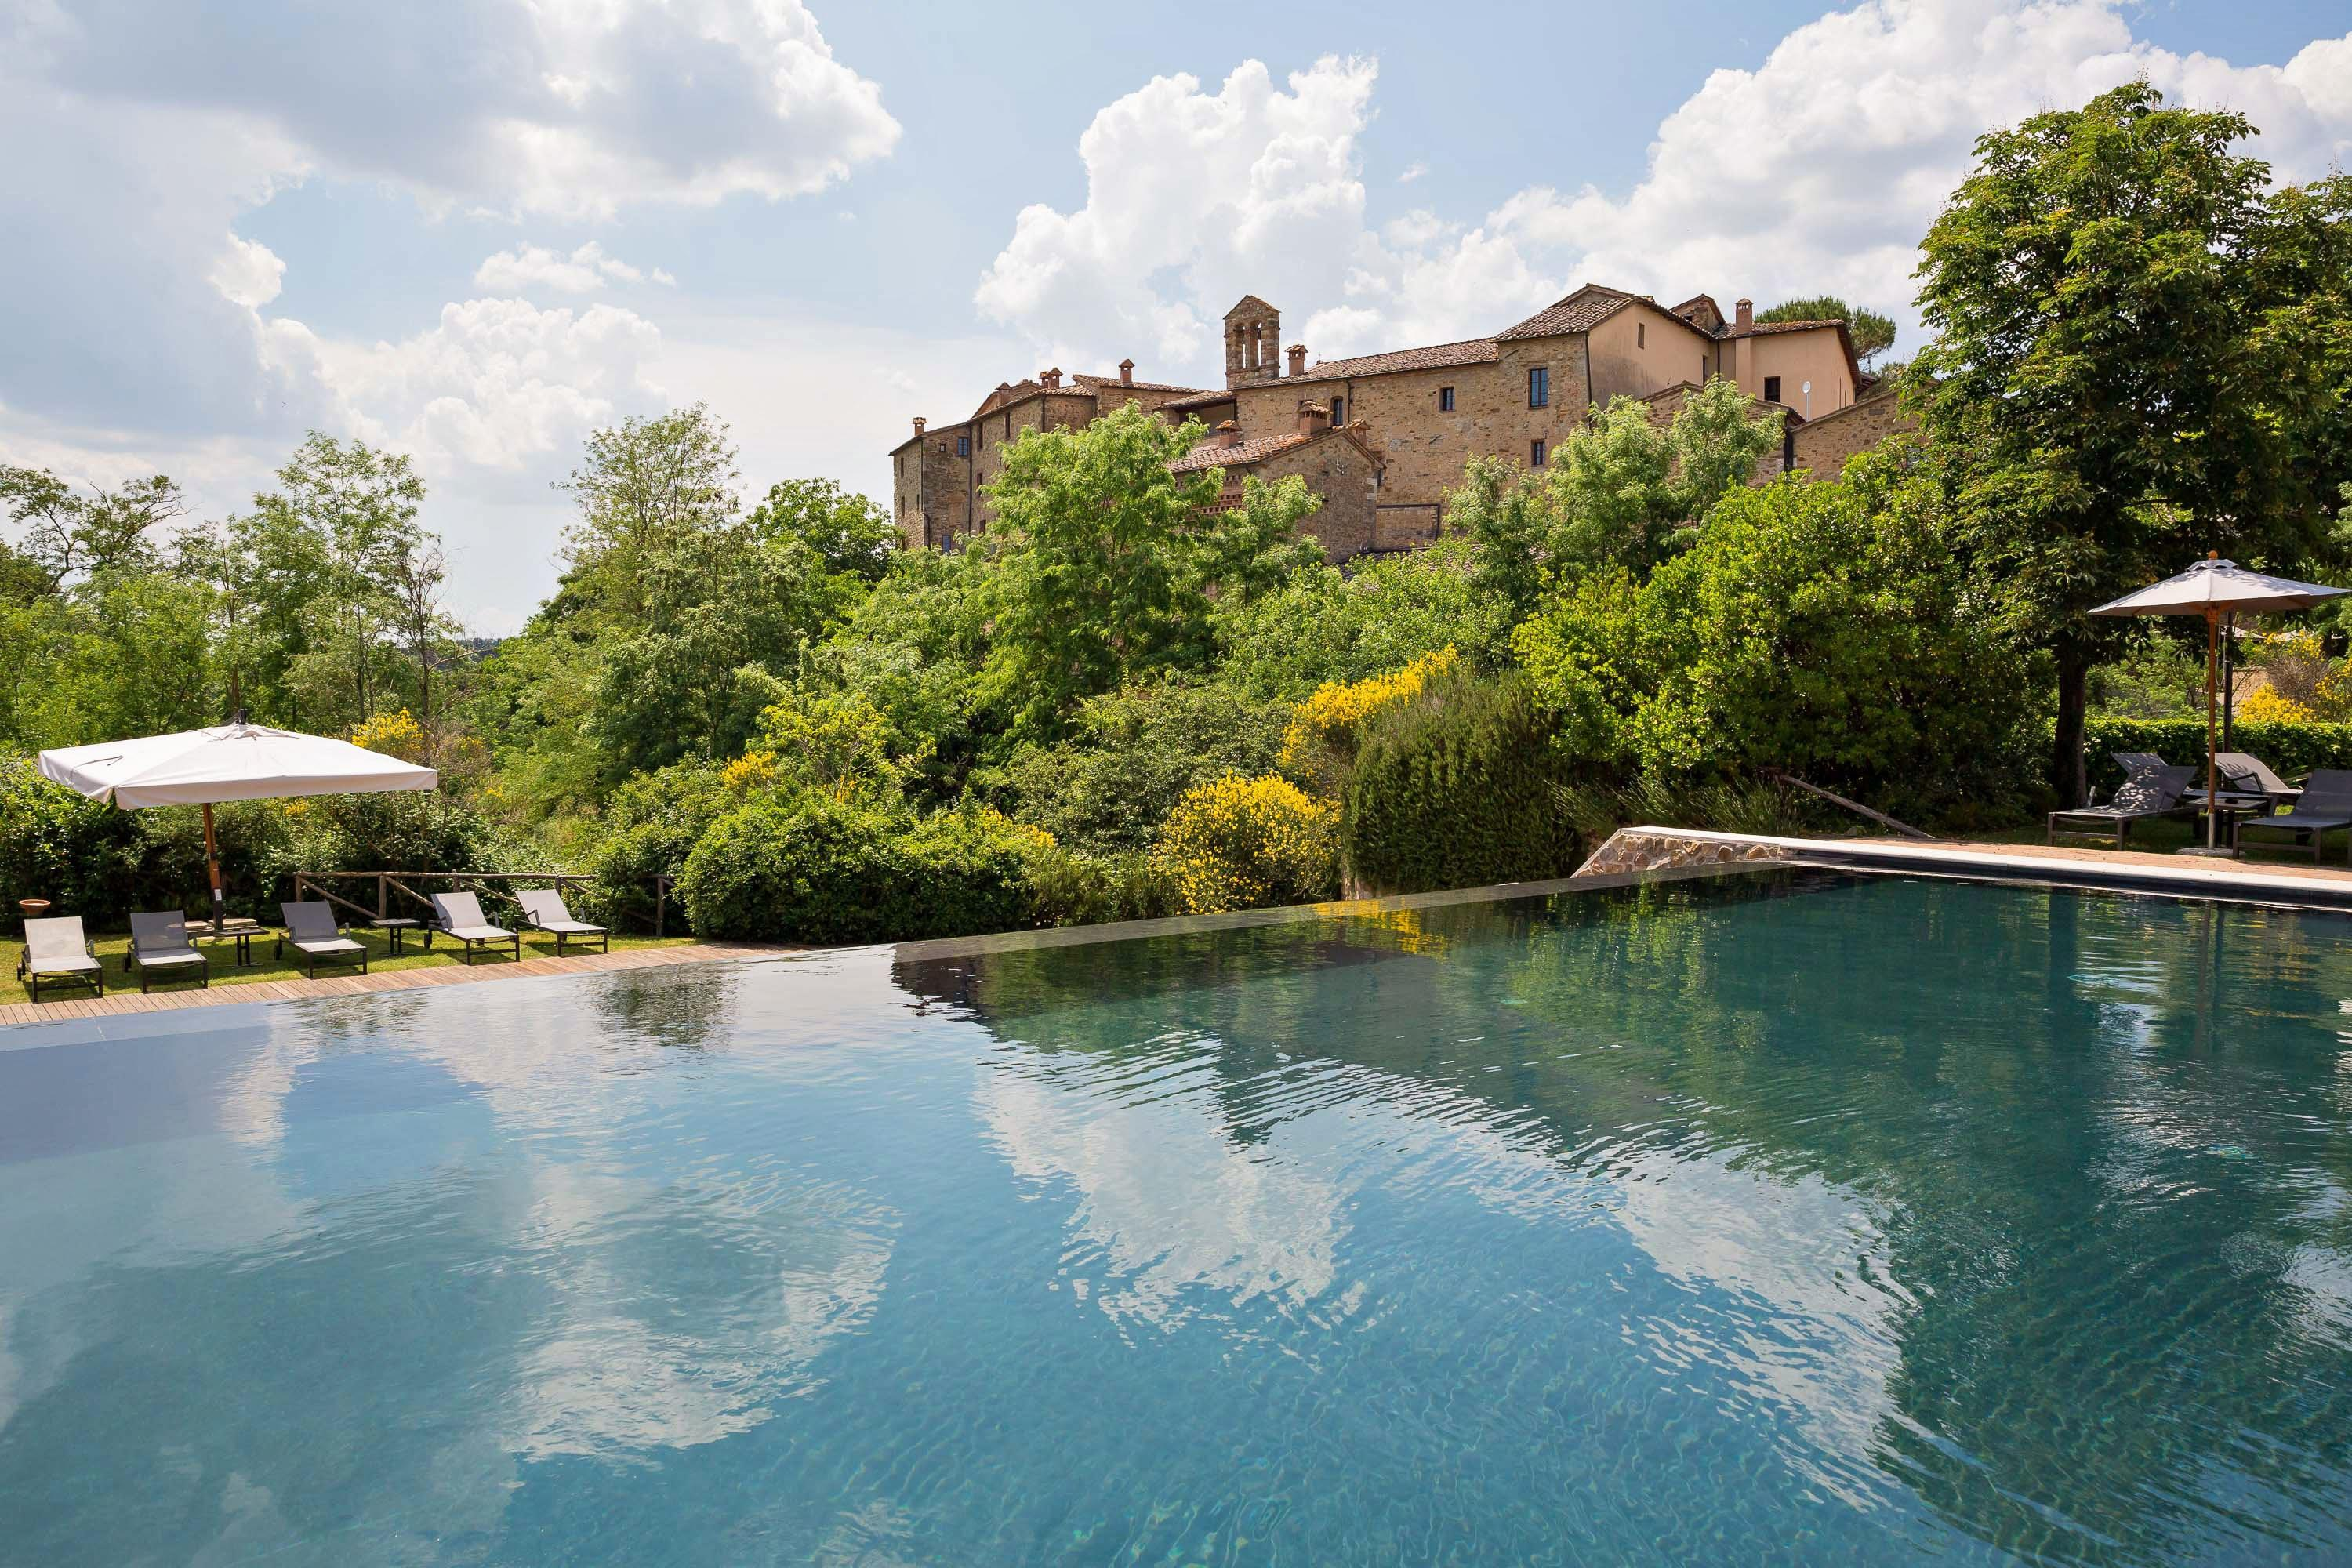 """<a href=""""https://www.castelmonastero.com/"""" rel=""""nofollow noopener"""" target=""""_blank"""" data-ylk=""""slk:A former castle"""" class=""""link rapid-noclick-resp""""><em>A former castle</em></a>: Millennia-old walls and a former monastery and castle now take the form of a stunning design hotel in the heart of Tuscany's Chianti region. A restored medieval village, the luxe retreat has been designed in contemporary Tuscan countryside style. The exclusive design property caters to all tastes with an on-site golf course, a wine bar, gourmet dining, and a fully equipped day spa."""